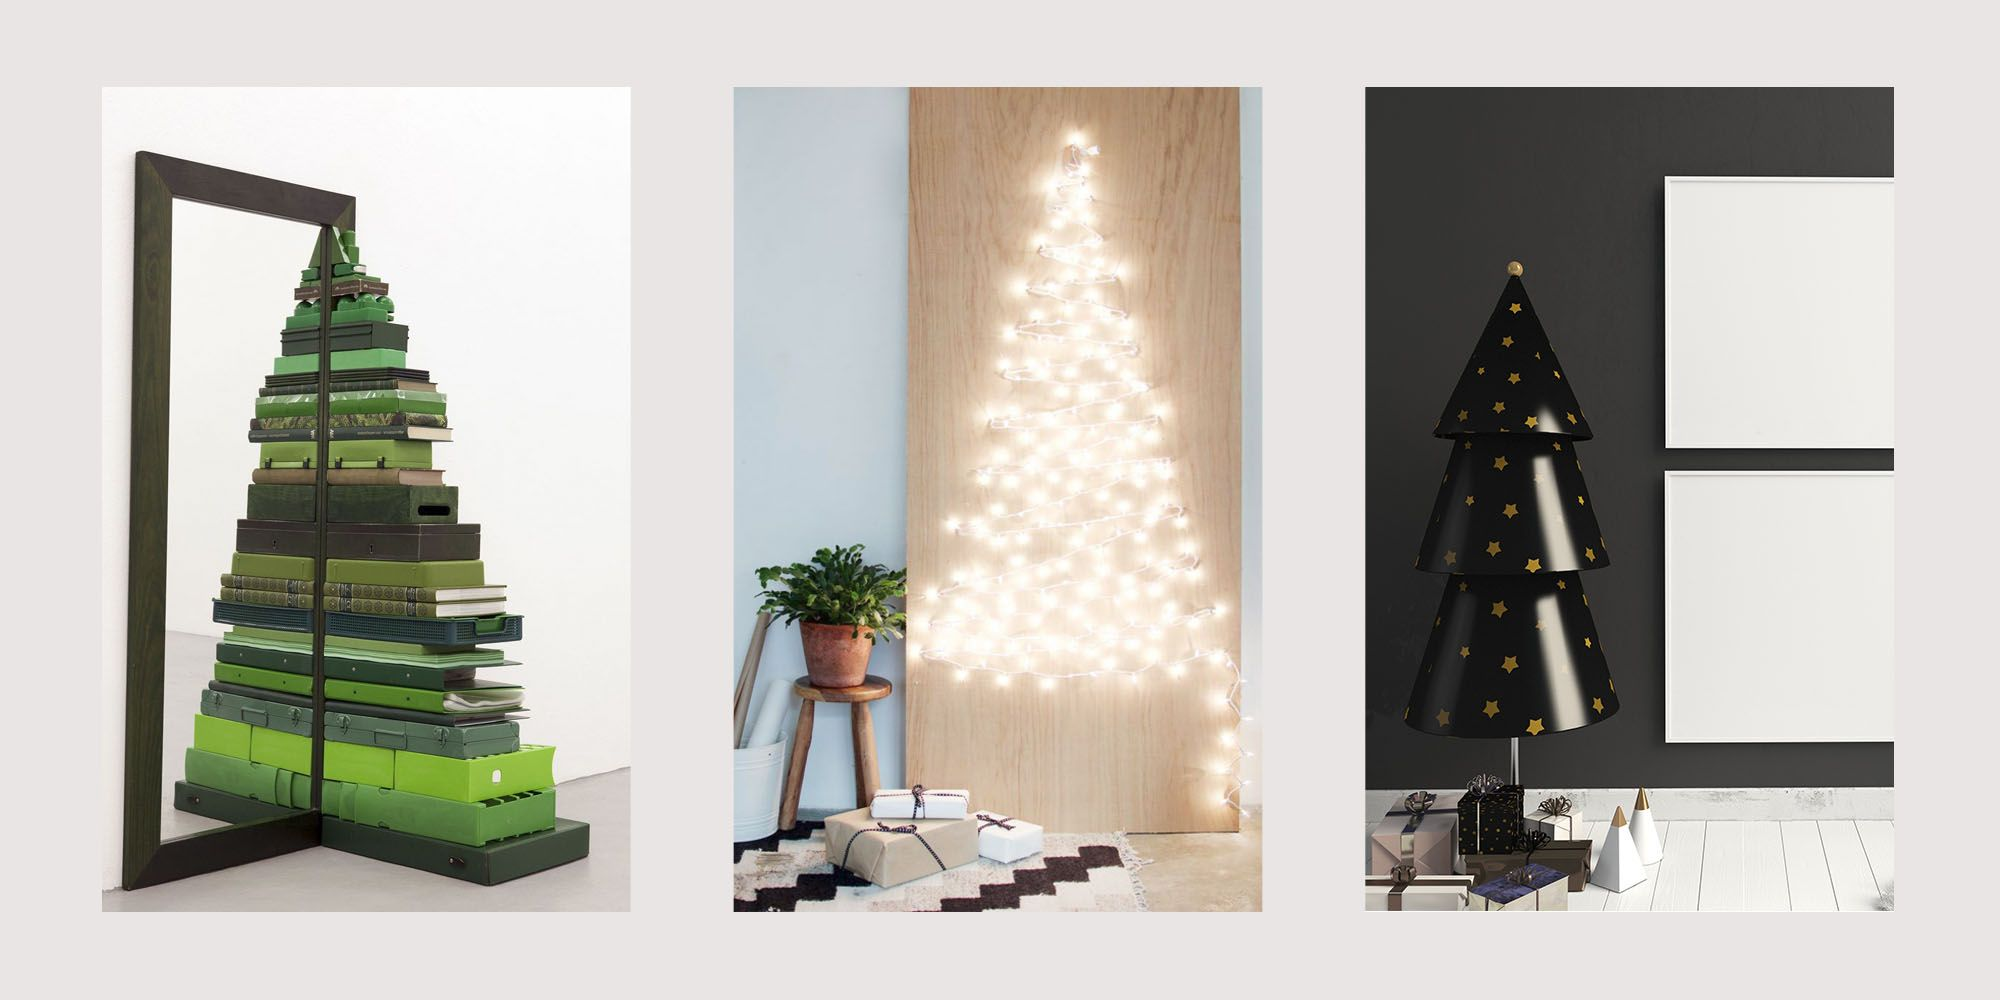 21 Alternative Christmas Tree Ideas Unique & Modern Replacements